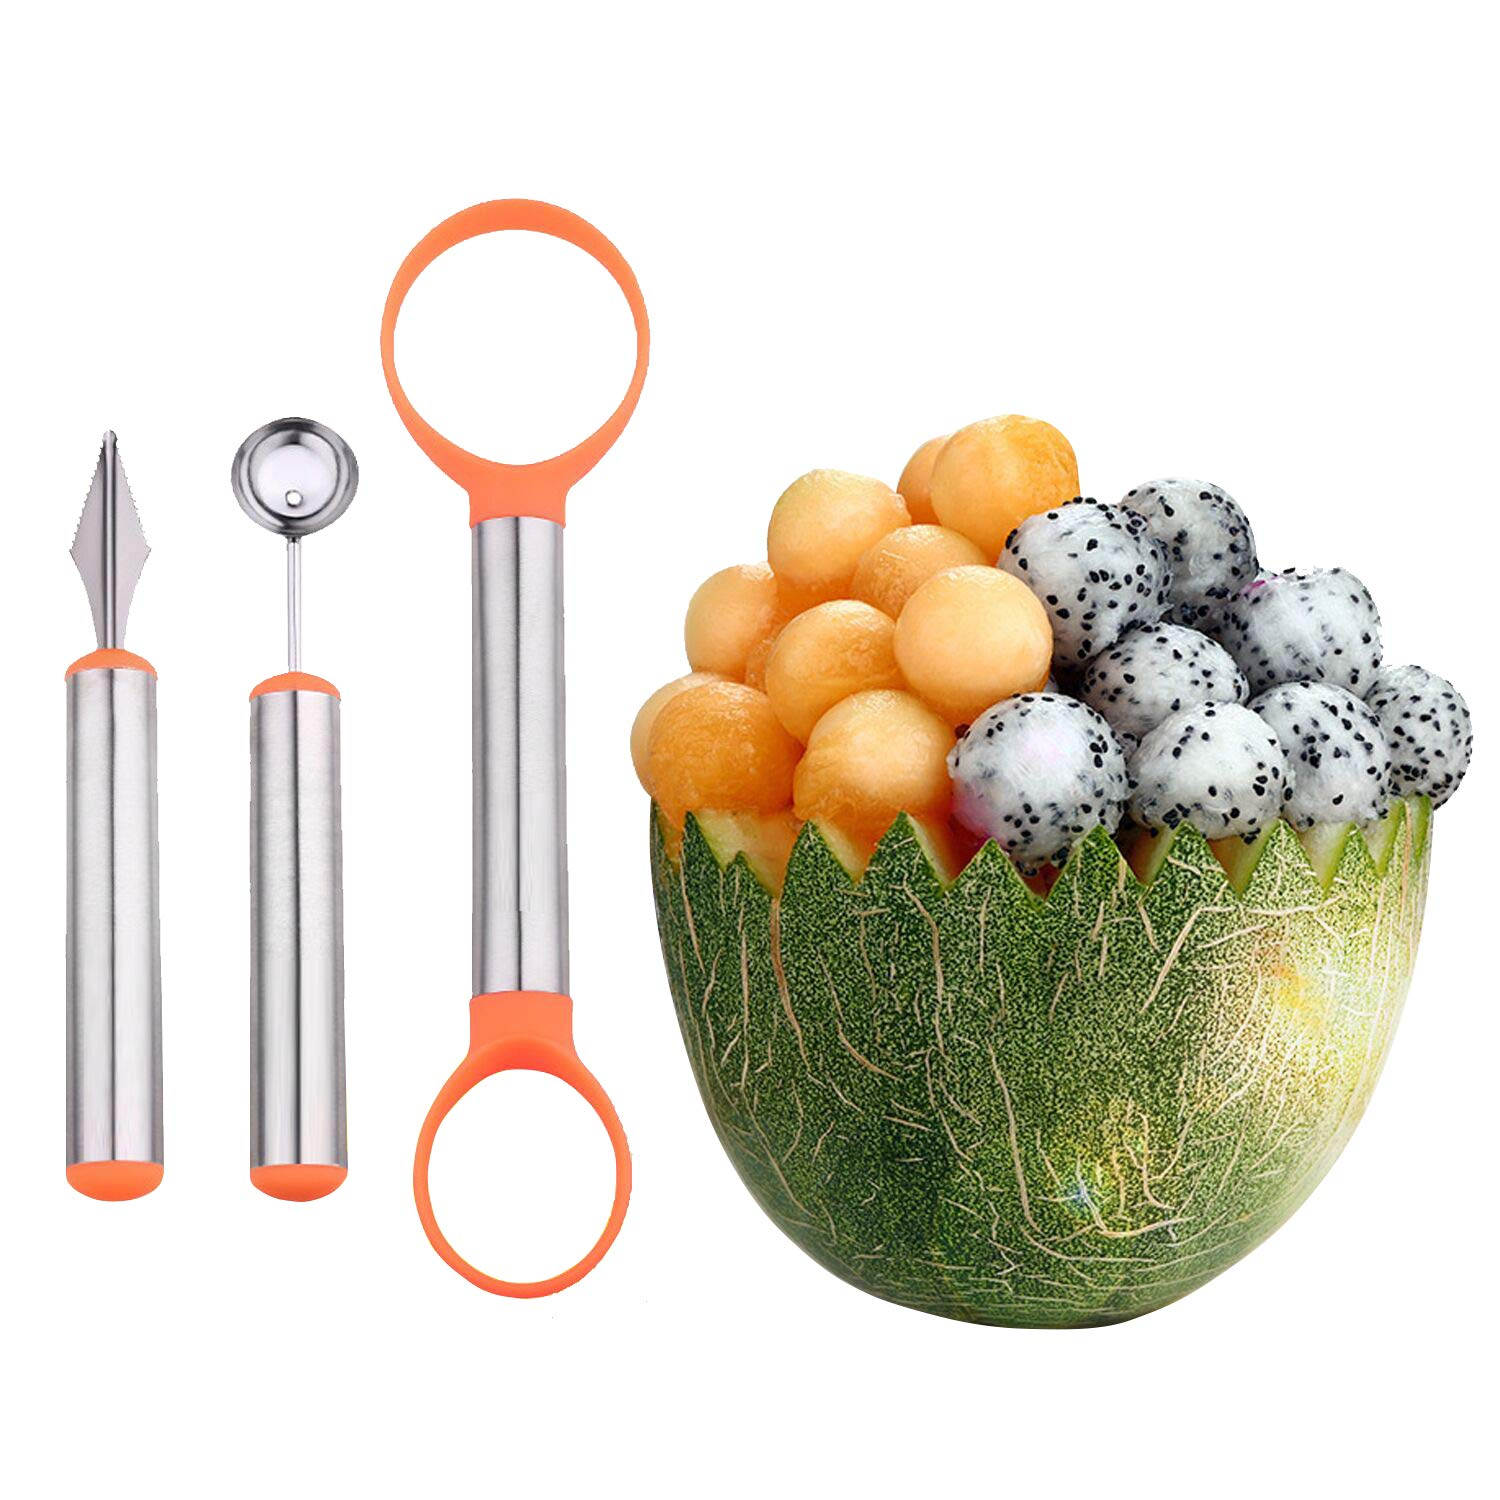 WAAO 3-in-1 Stainless Steel Melon Baller & Carving Knife & Fruit Scoop Set for Fruit Slicer Dig Pulp Separator and Carve by WAAO